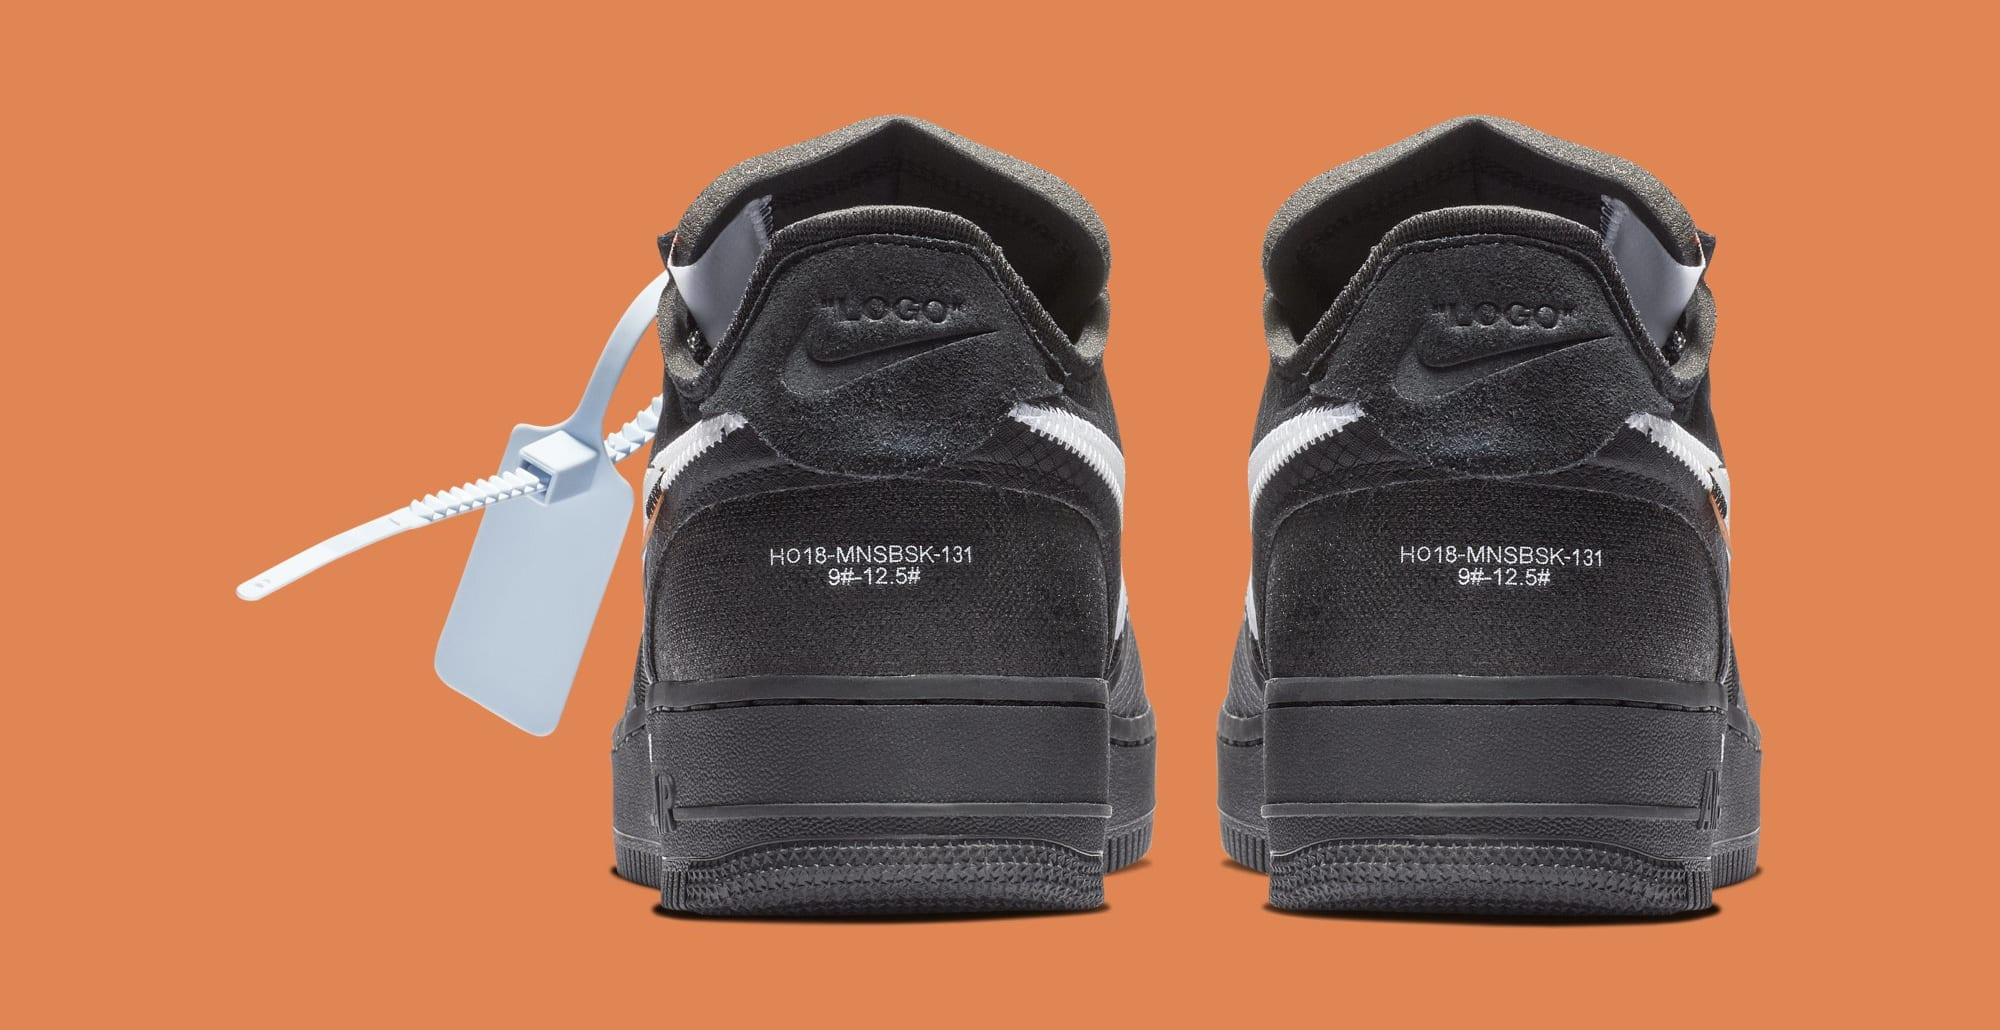 3cb1134afa Off-White x Nike Air Force 1 Low 'Black/White' AO4606-001 Release Date |  Sole Collector